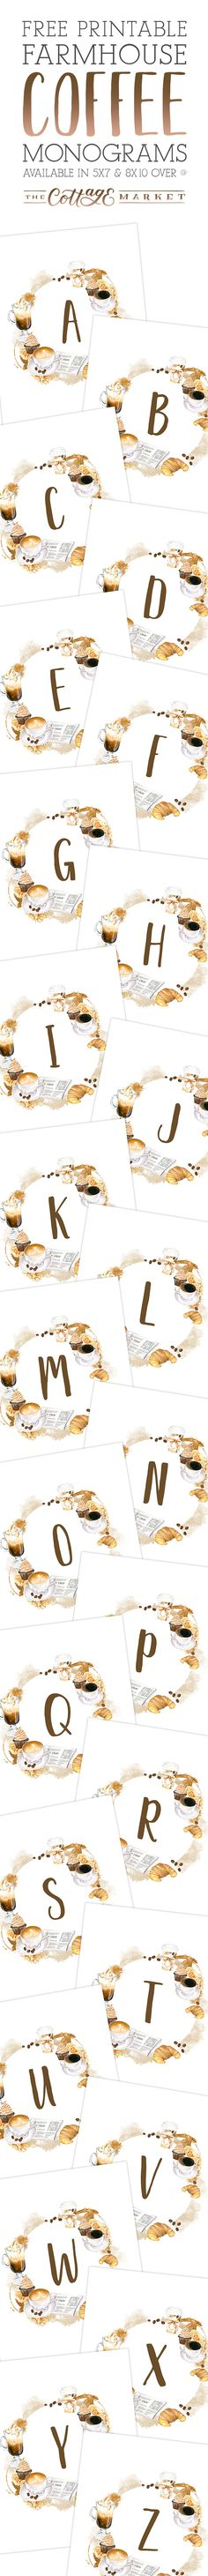 Free Printable Farmhouse Coffee Monograms